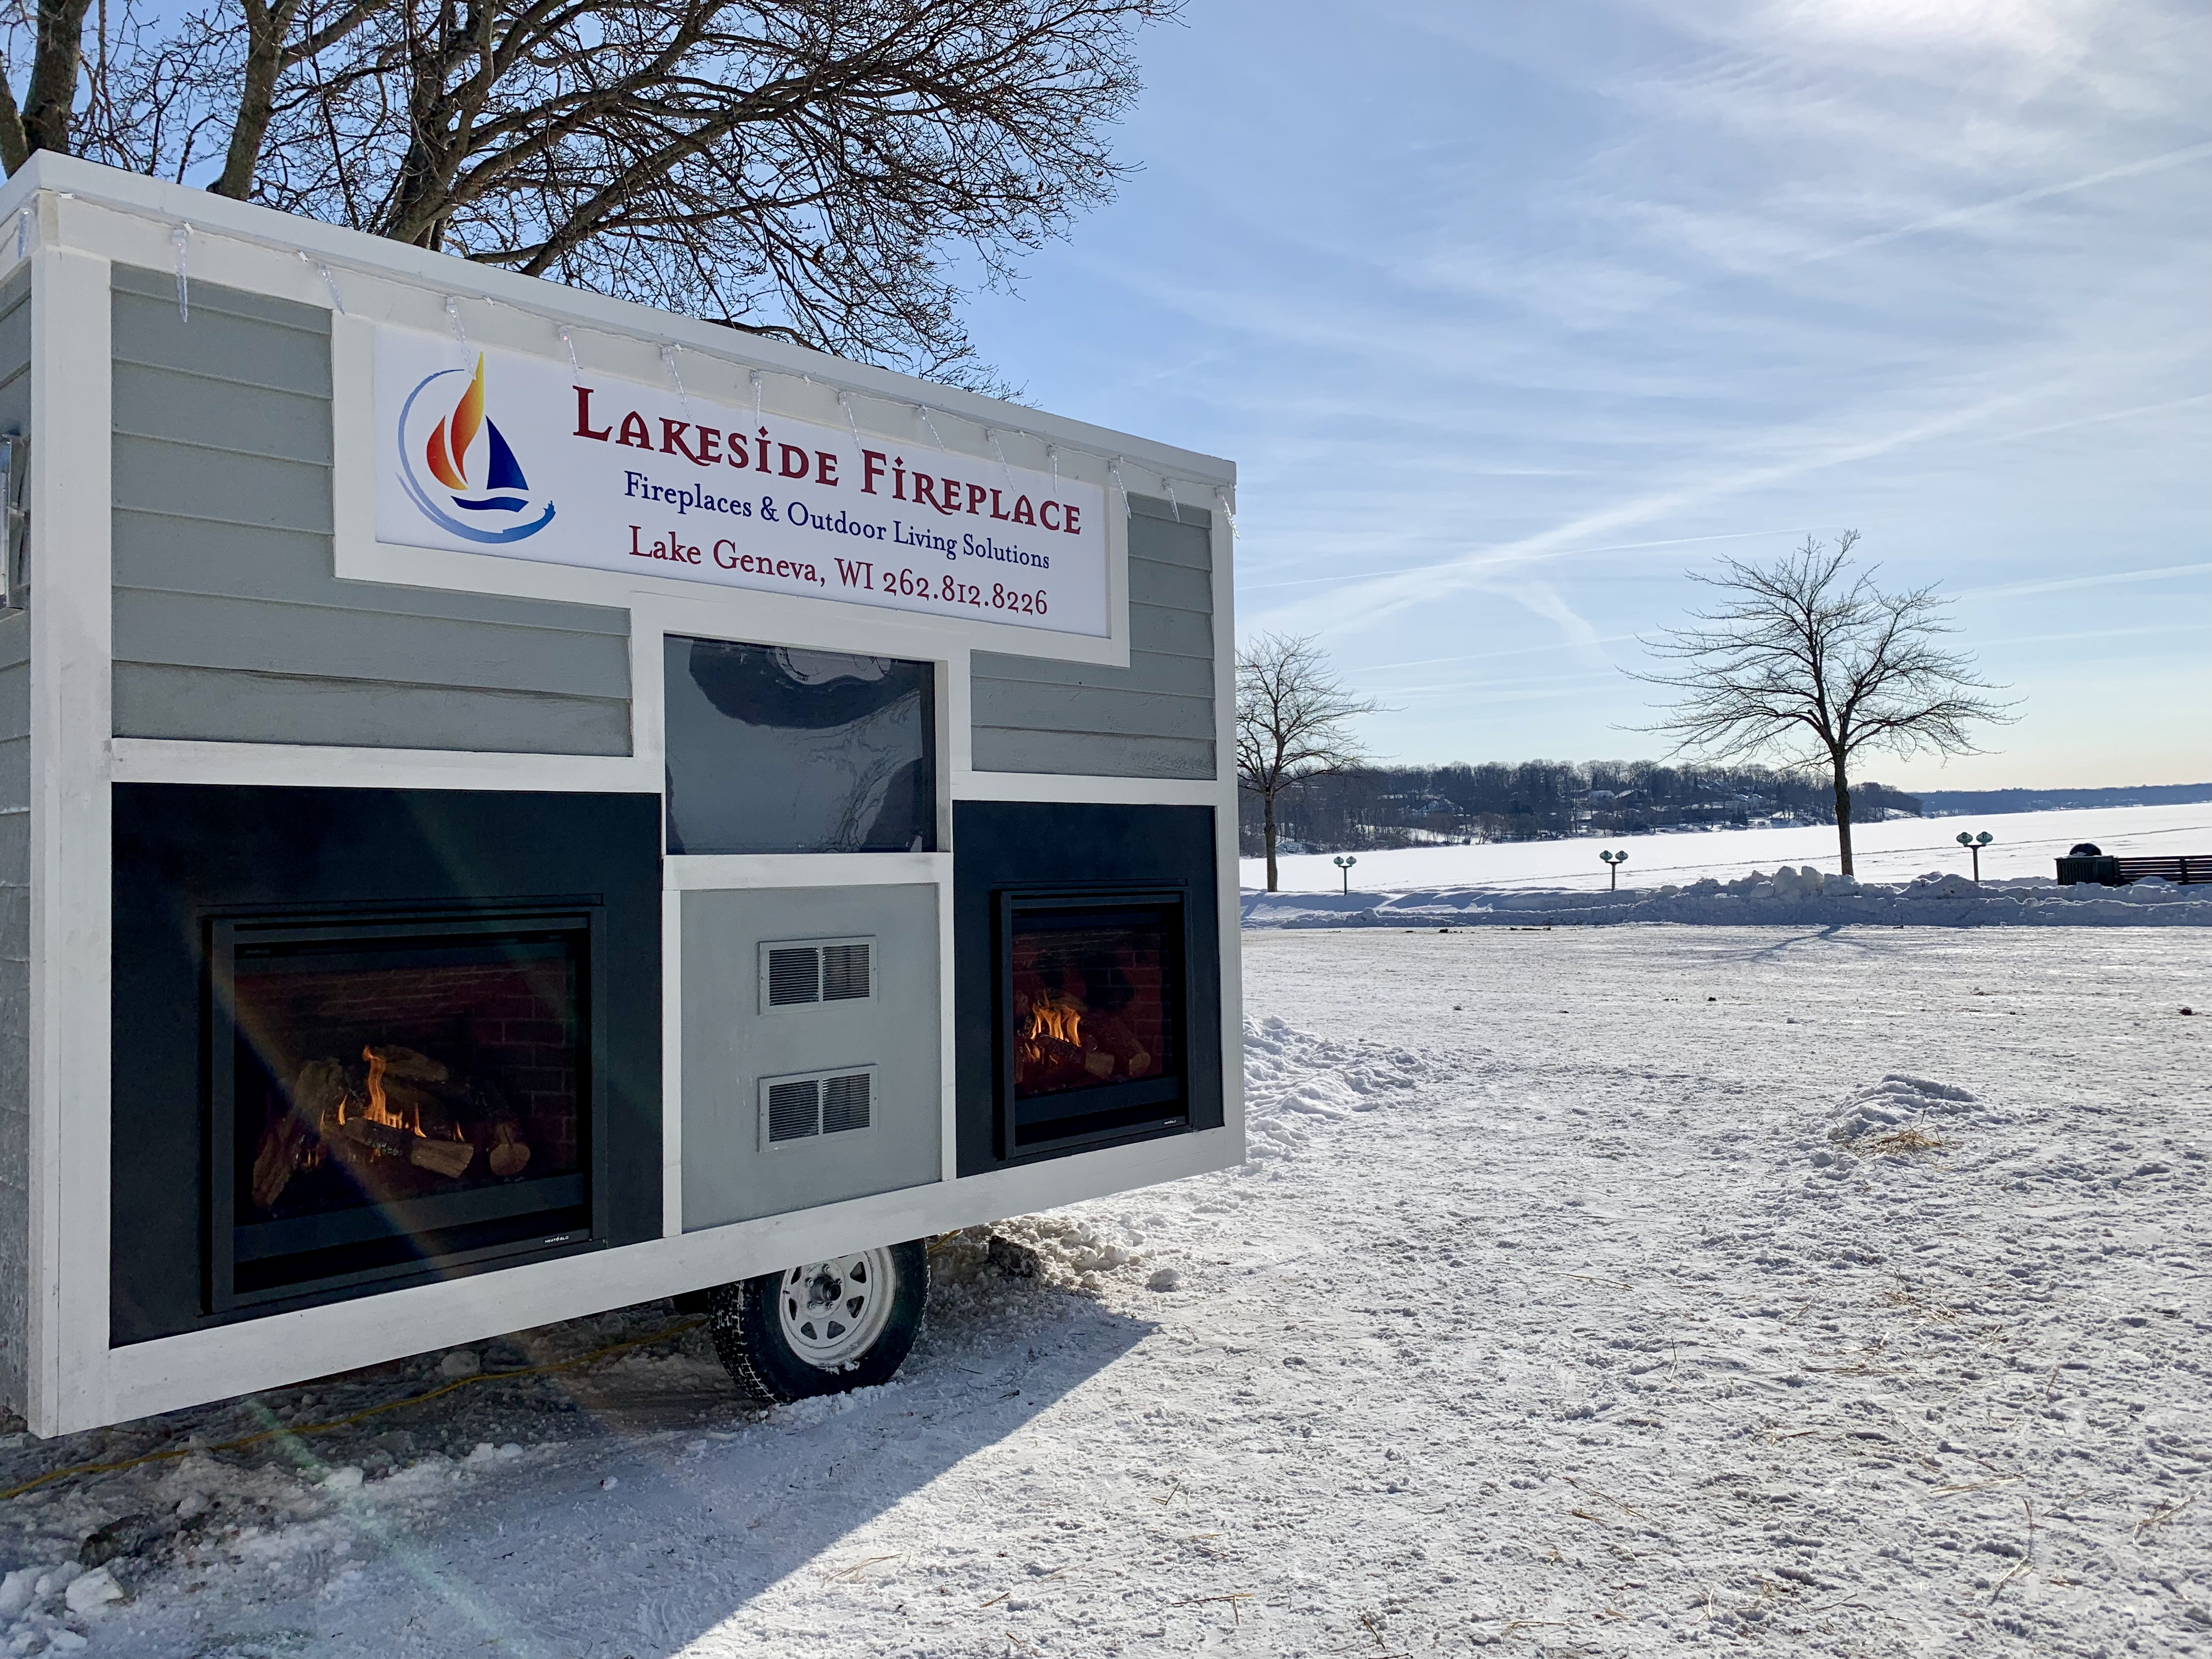 Winterfest Lake Geneva 2019